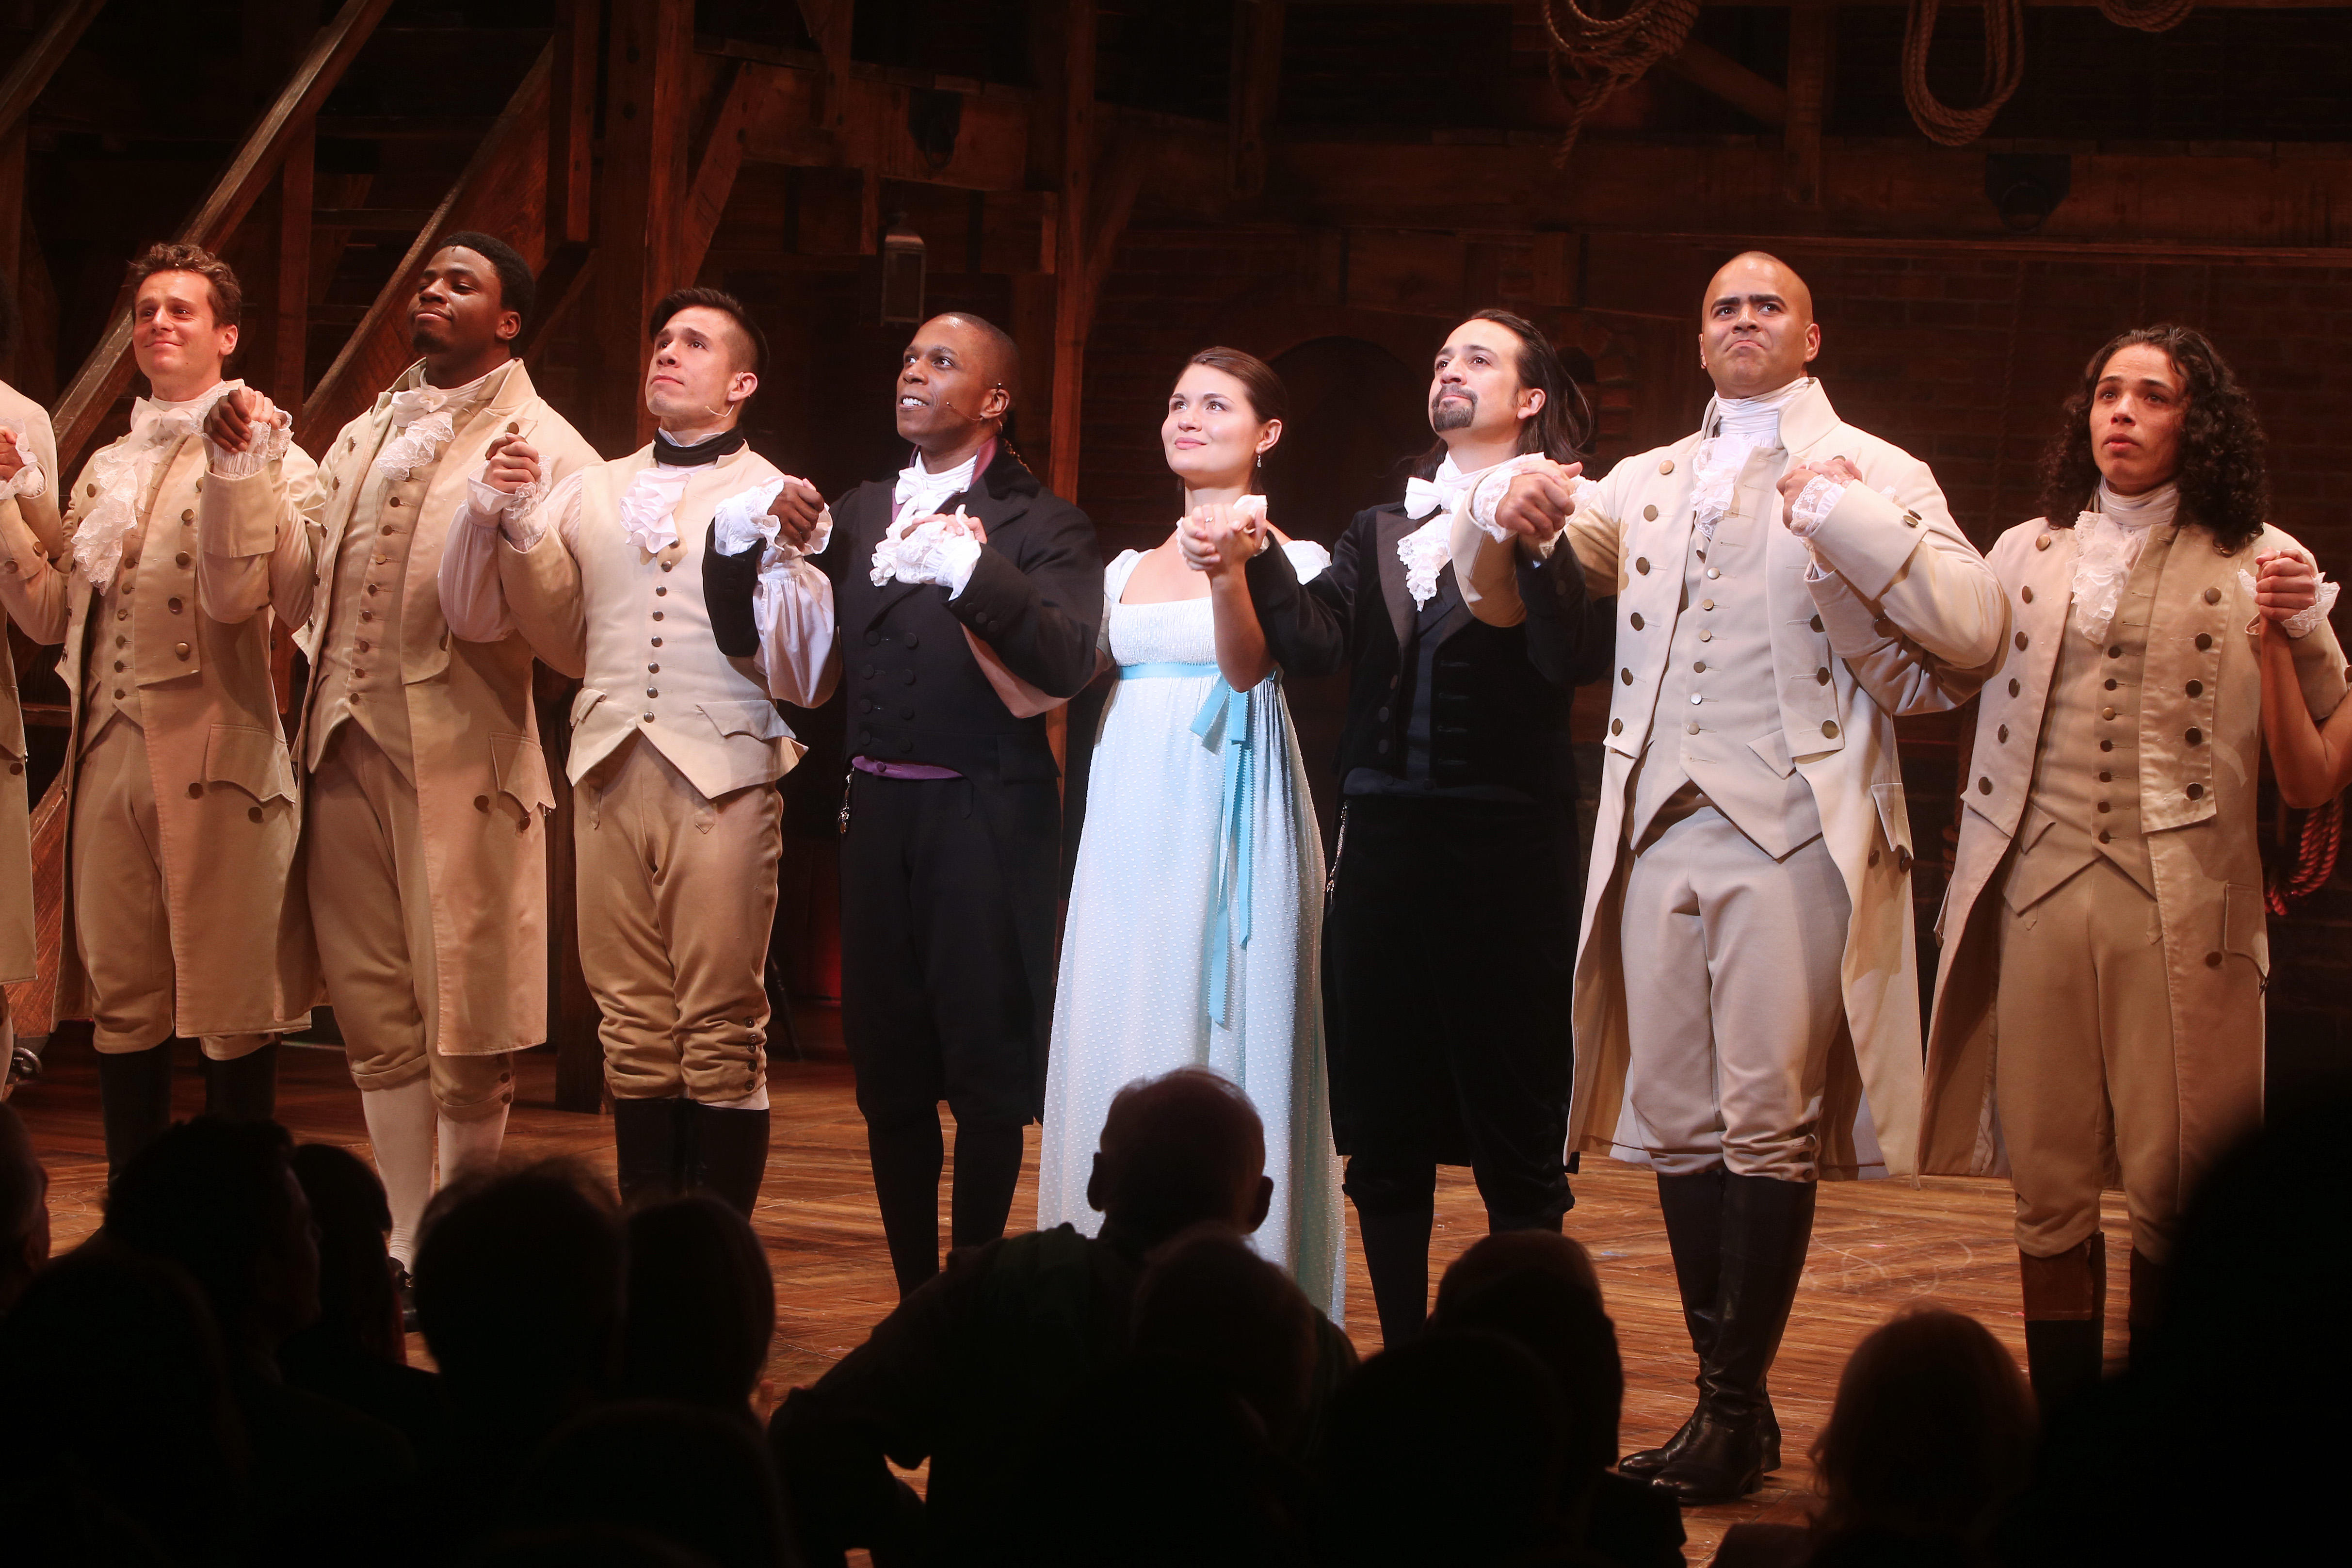 Opening night of the Broadway musical 'Hamilton' at the Richard Rodgers Theatre